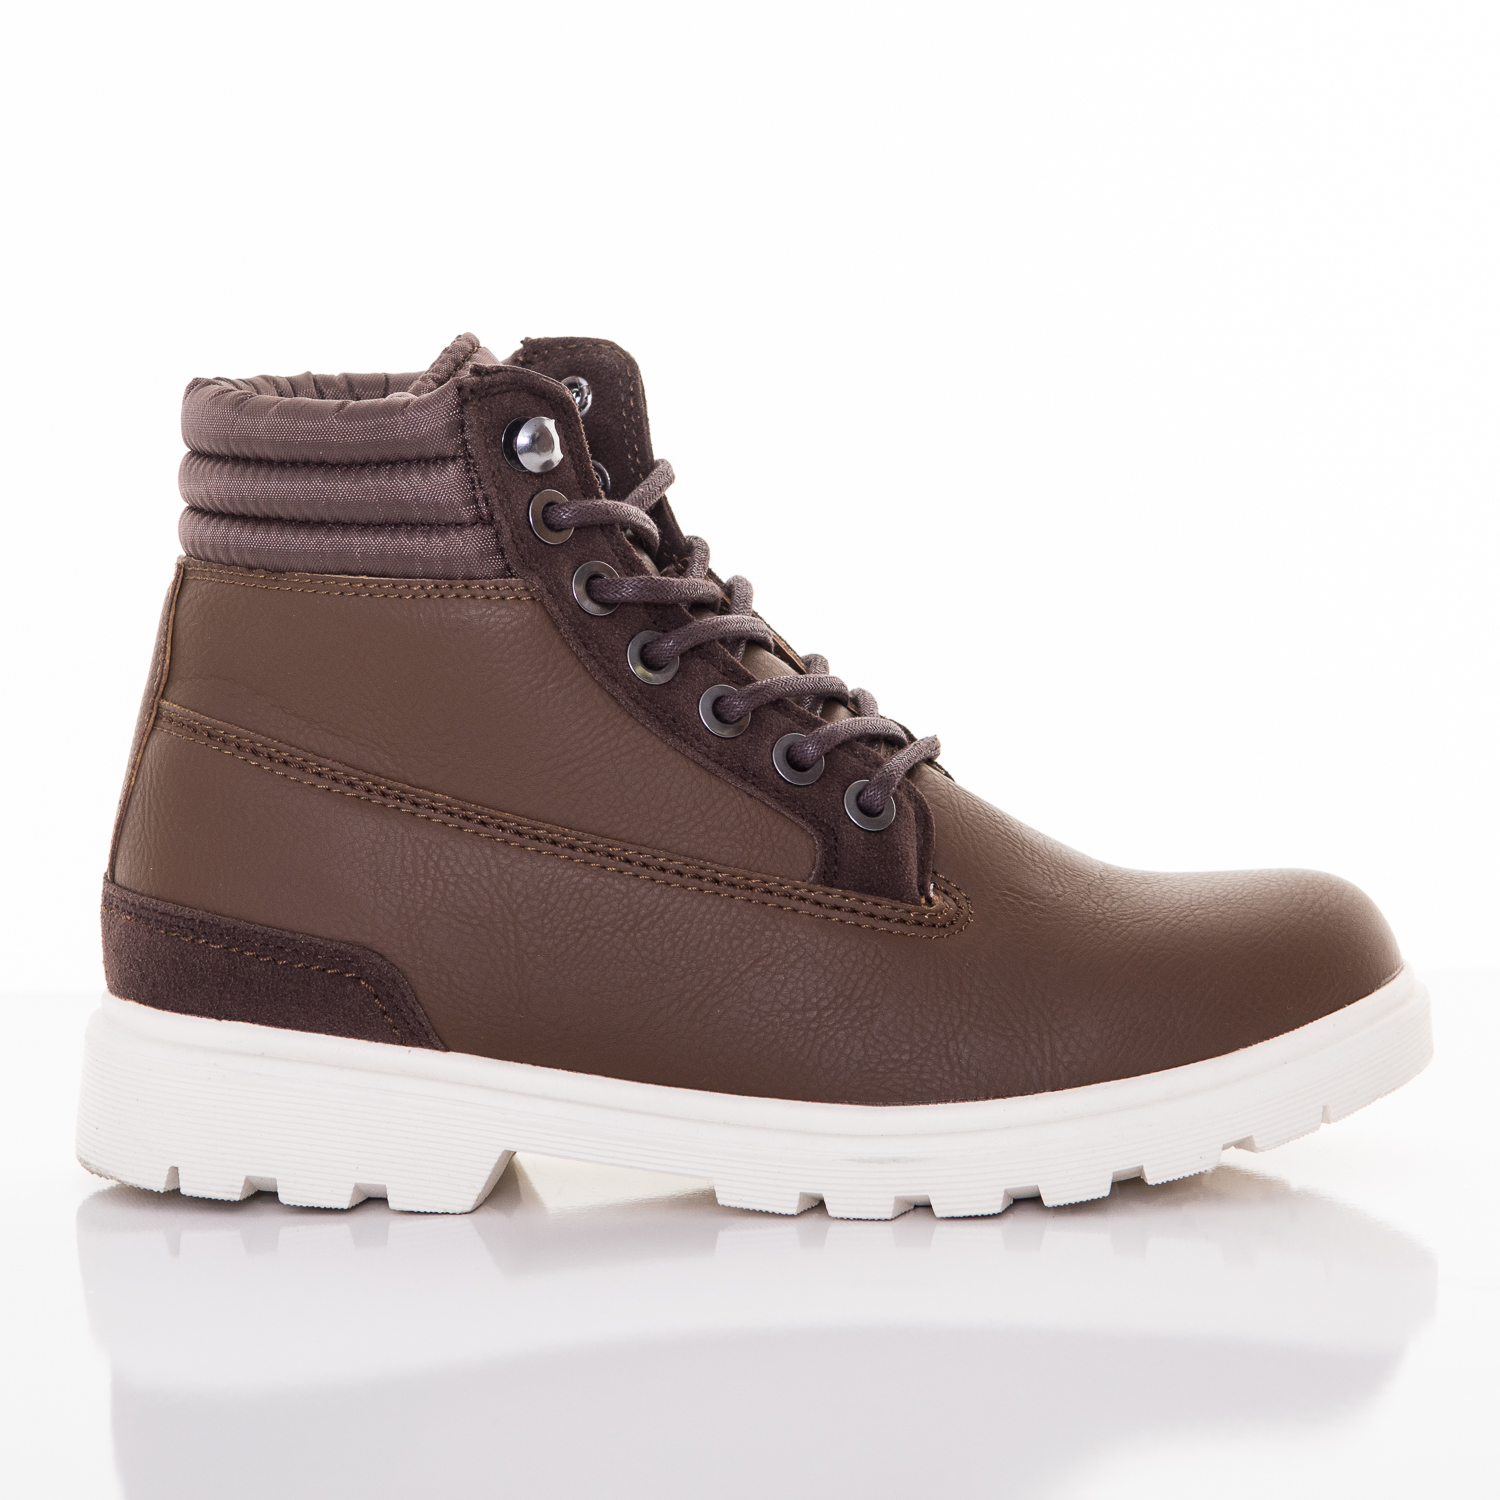 Zimná obuv Urban Classics Winter Boots Brown Darkbrown 40